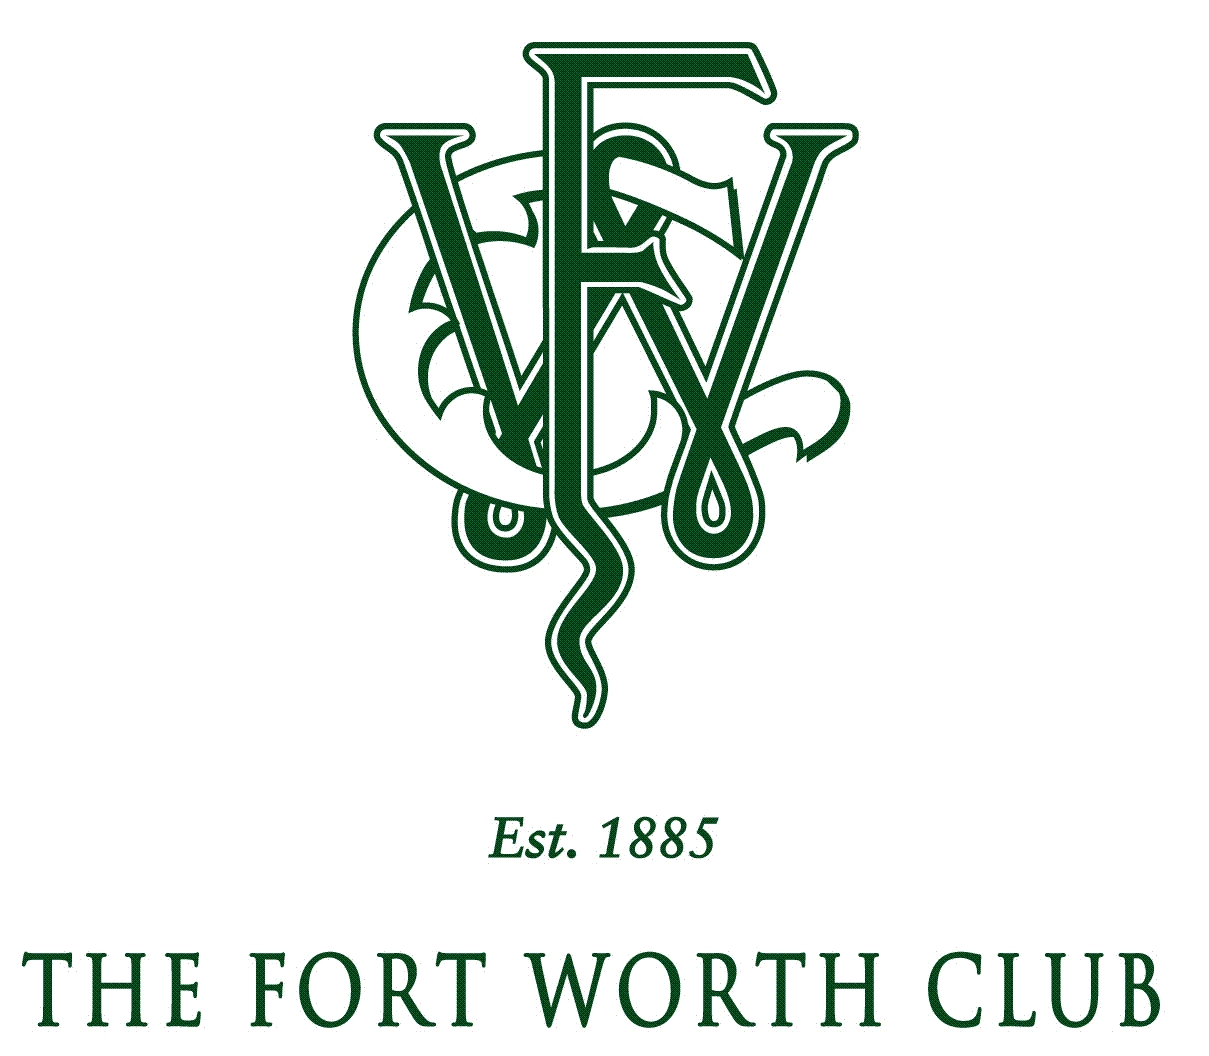 The Fort Worth Club.JPG